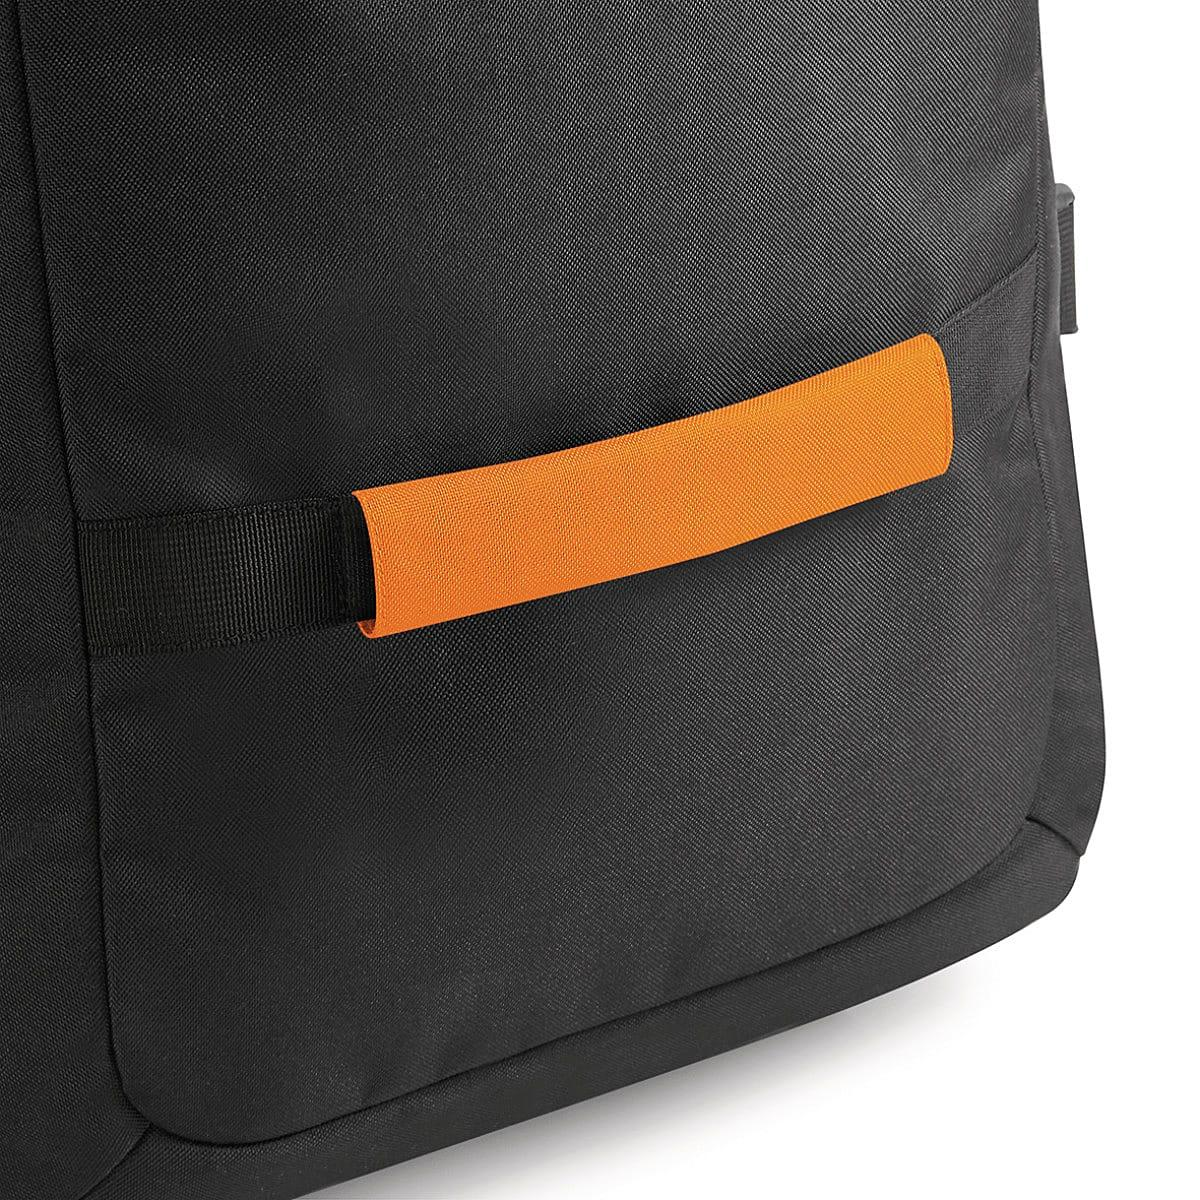 Bagbase Escape Handle Wrap in Orange (Product Code: BG485)